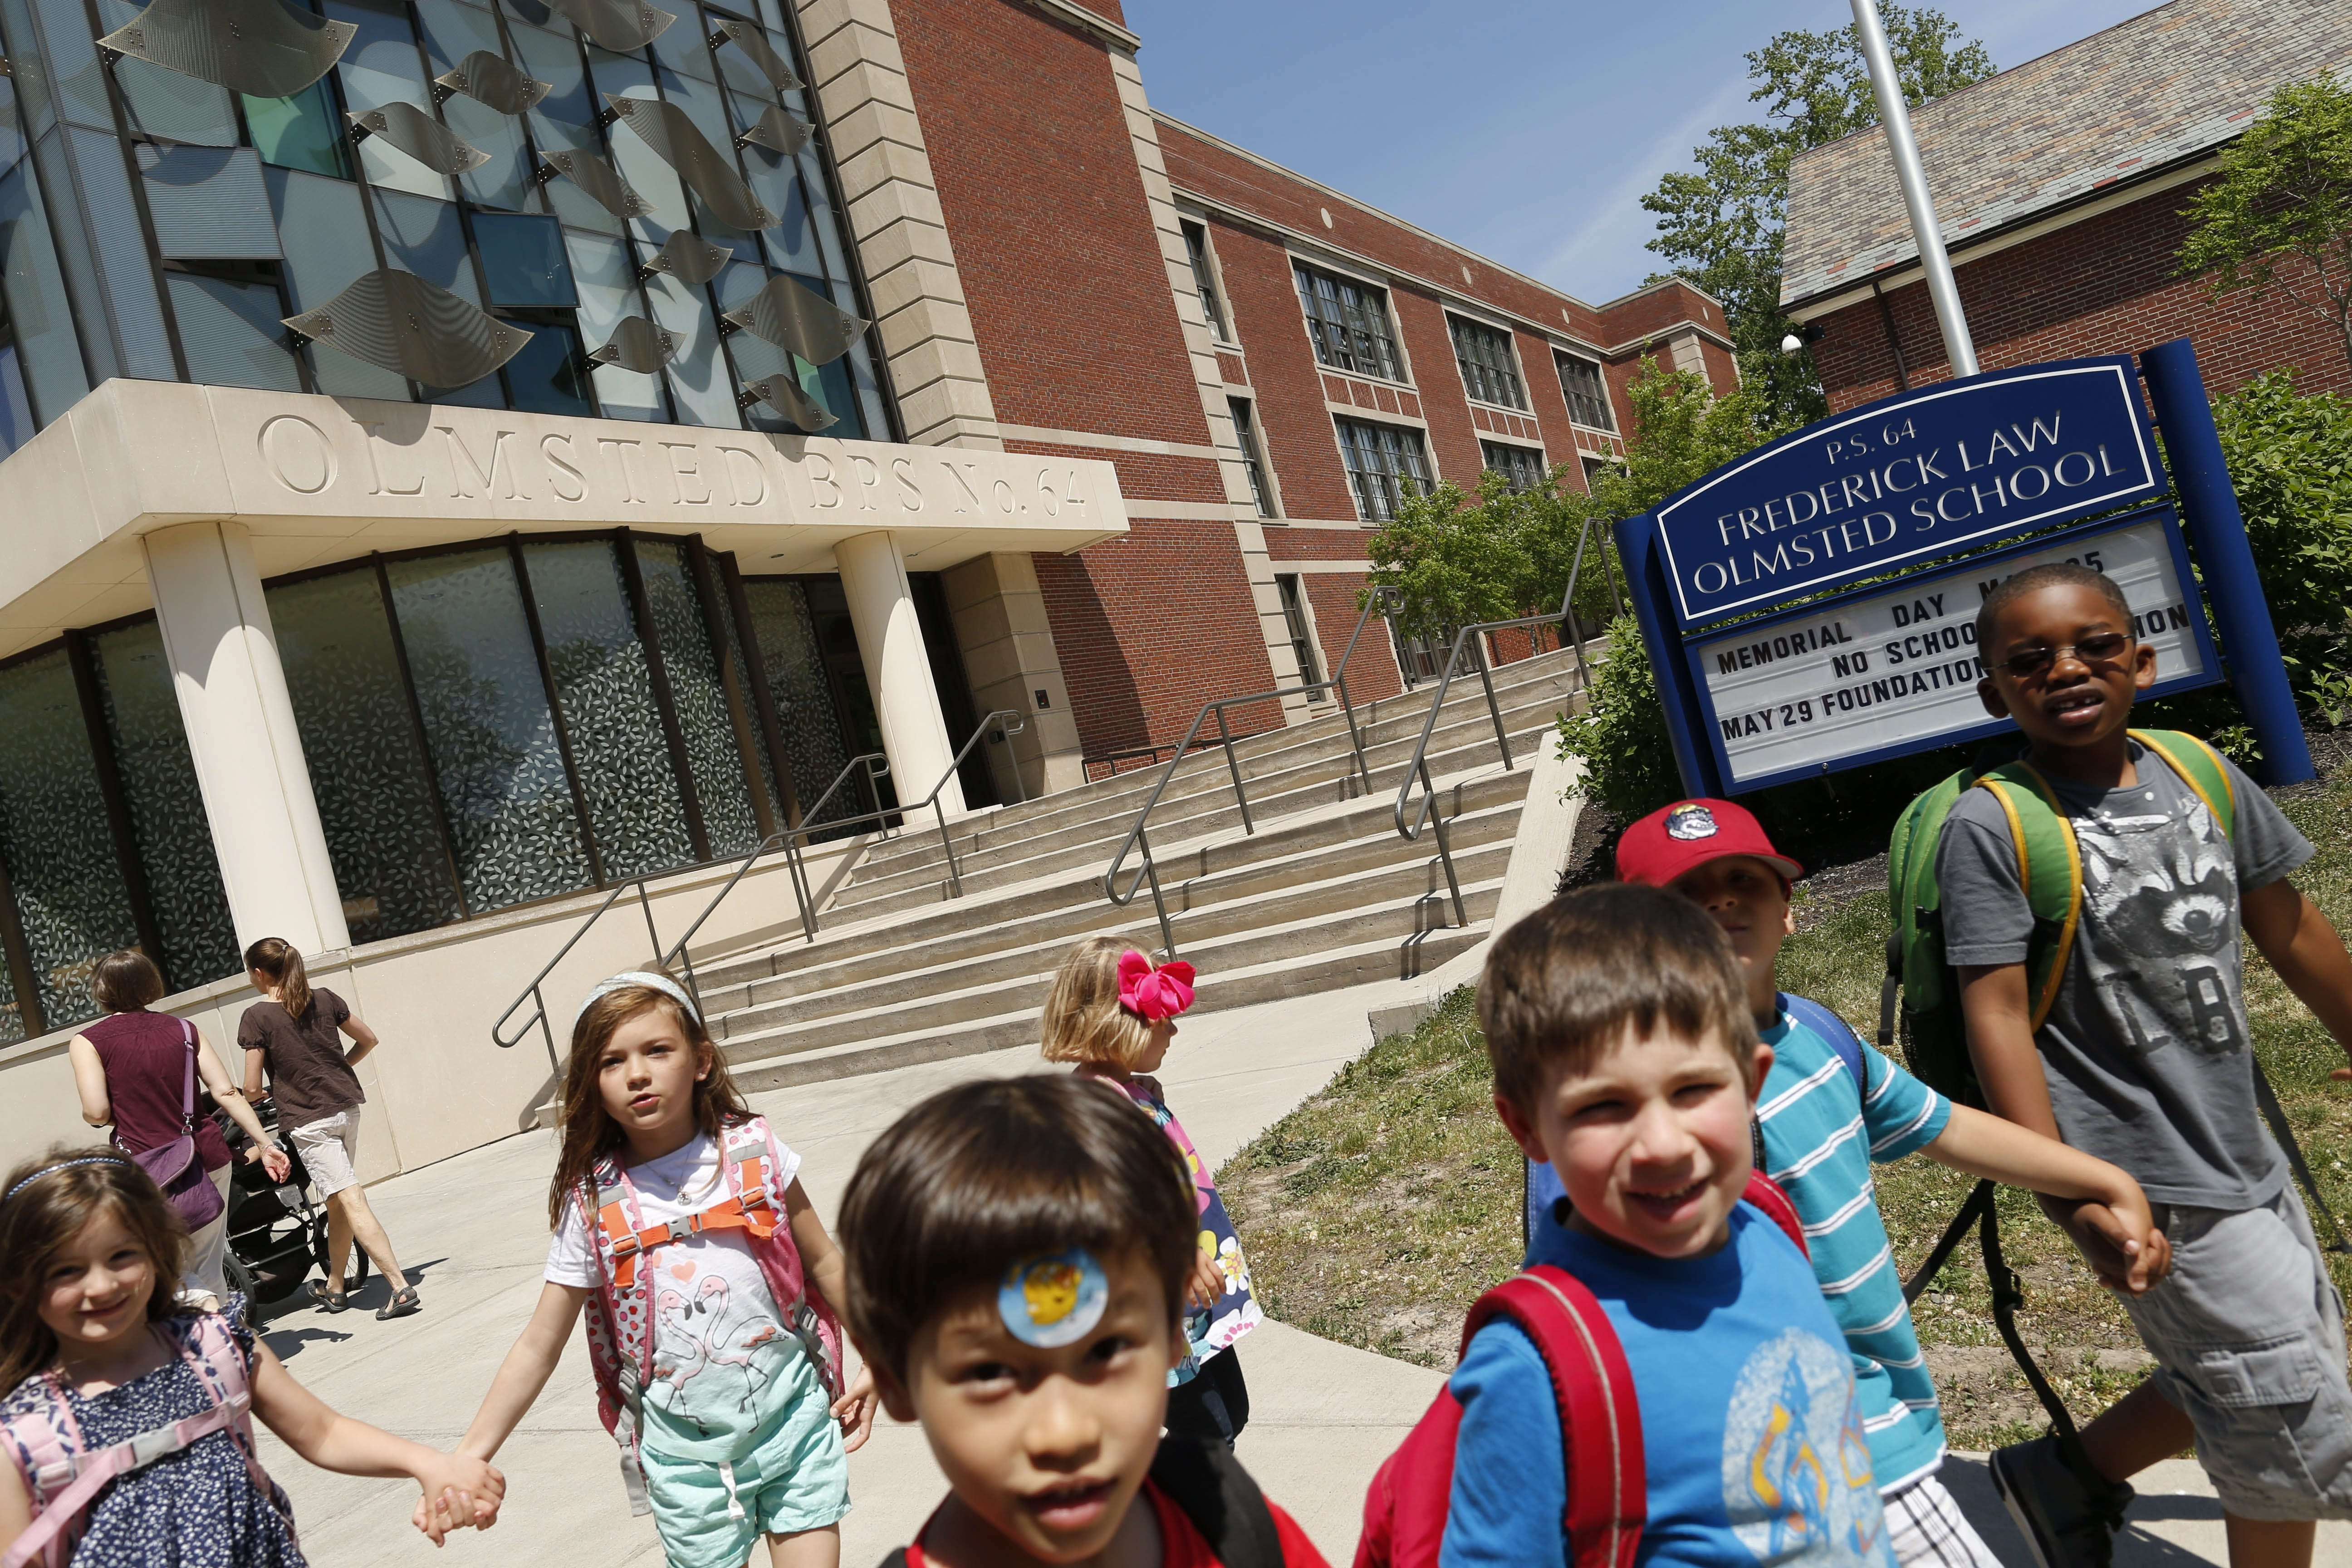 Students leave Olmsted School 64 at dismissal on Wednesday. Criteria-based schools such as Olmsted and City Honors were targeted in a report a civil rights expert presented Tuesday and Wednesday to the Buffalo School Board before Wednesday evening's board meeting.